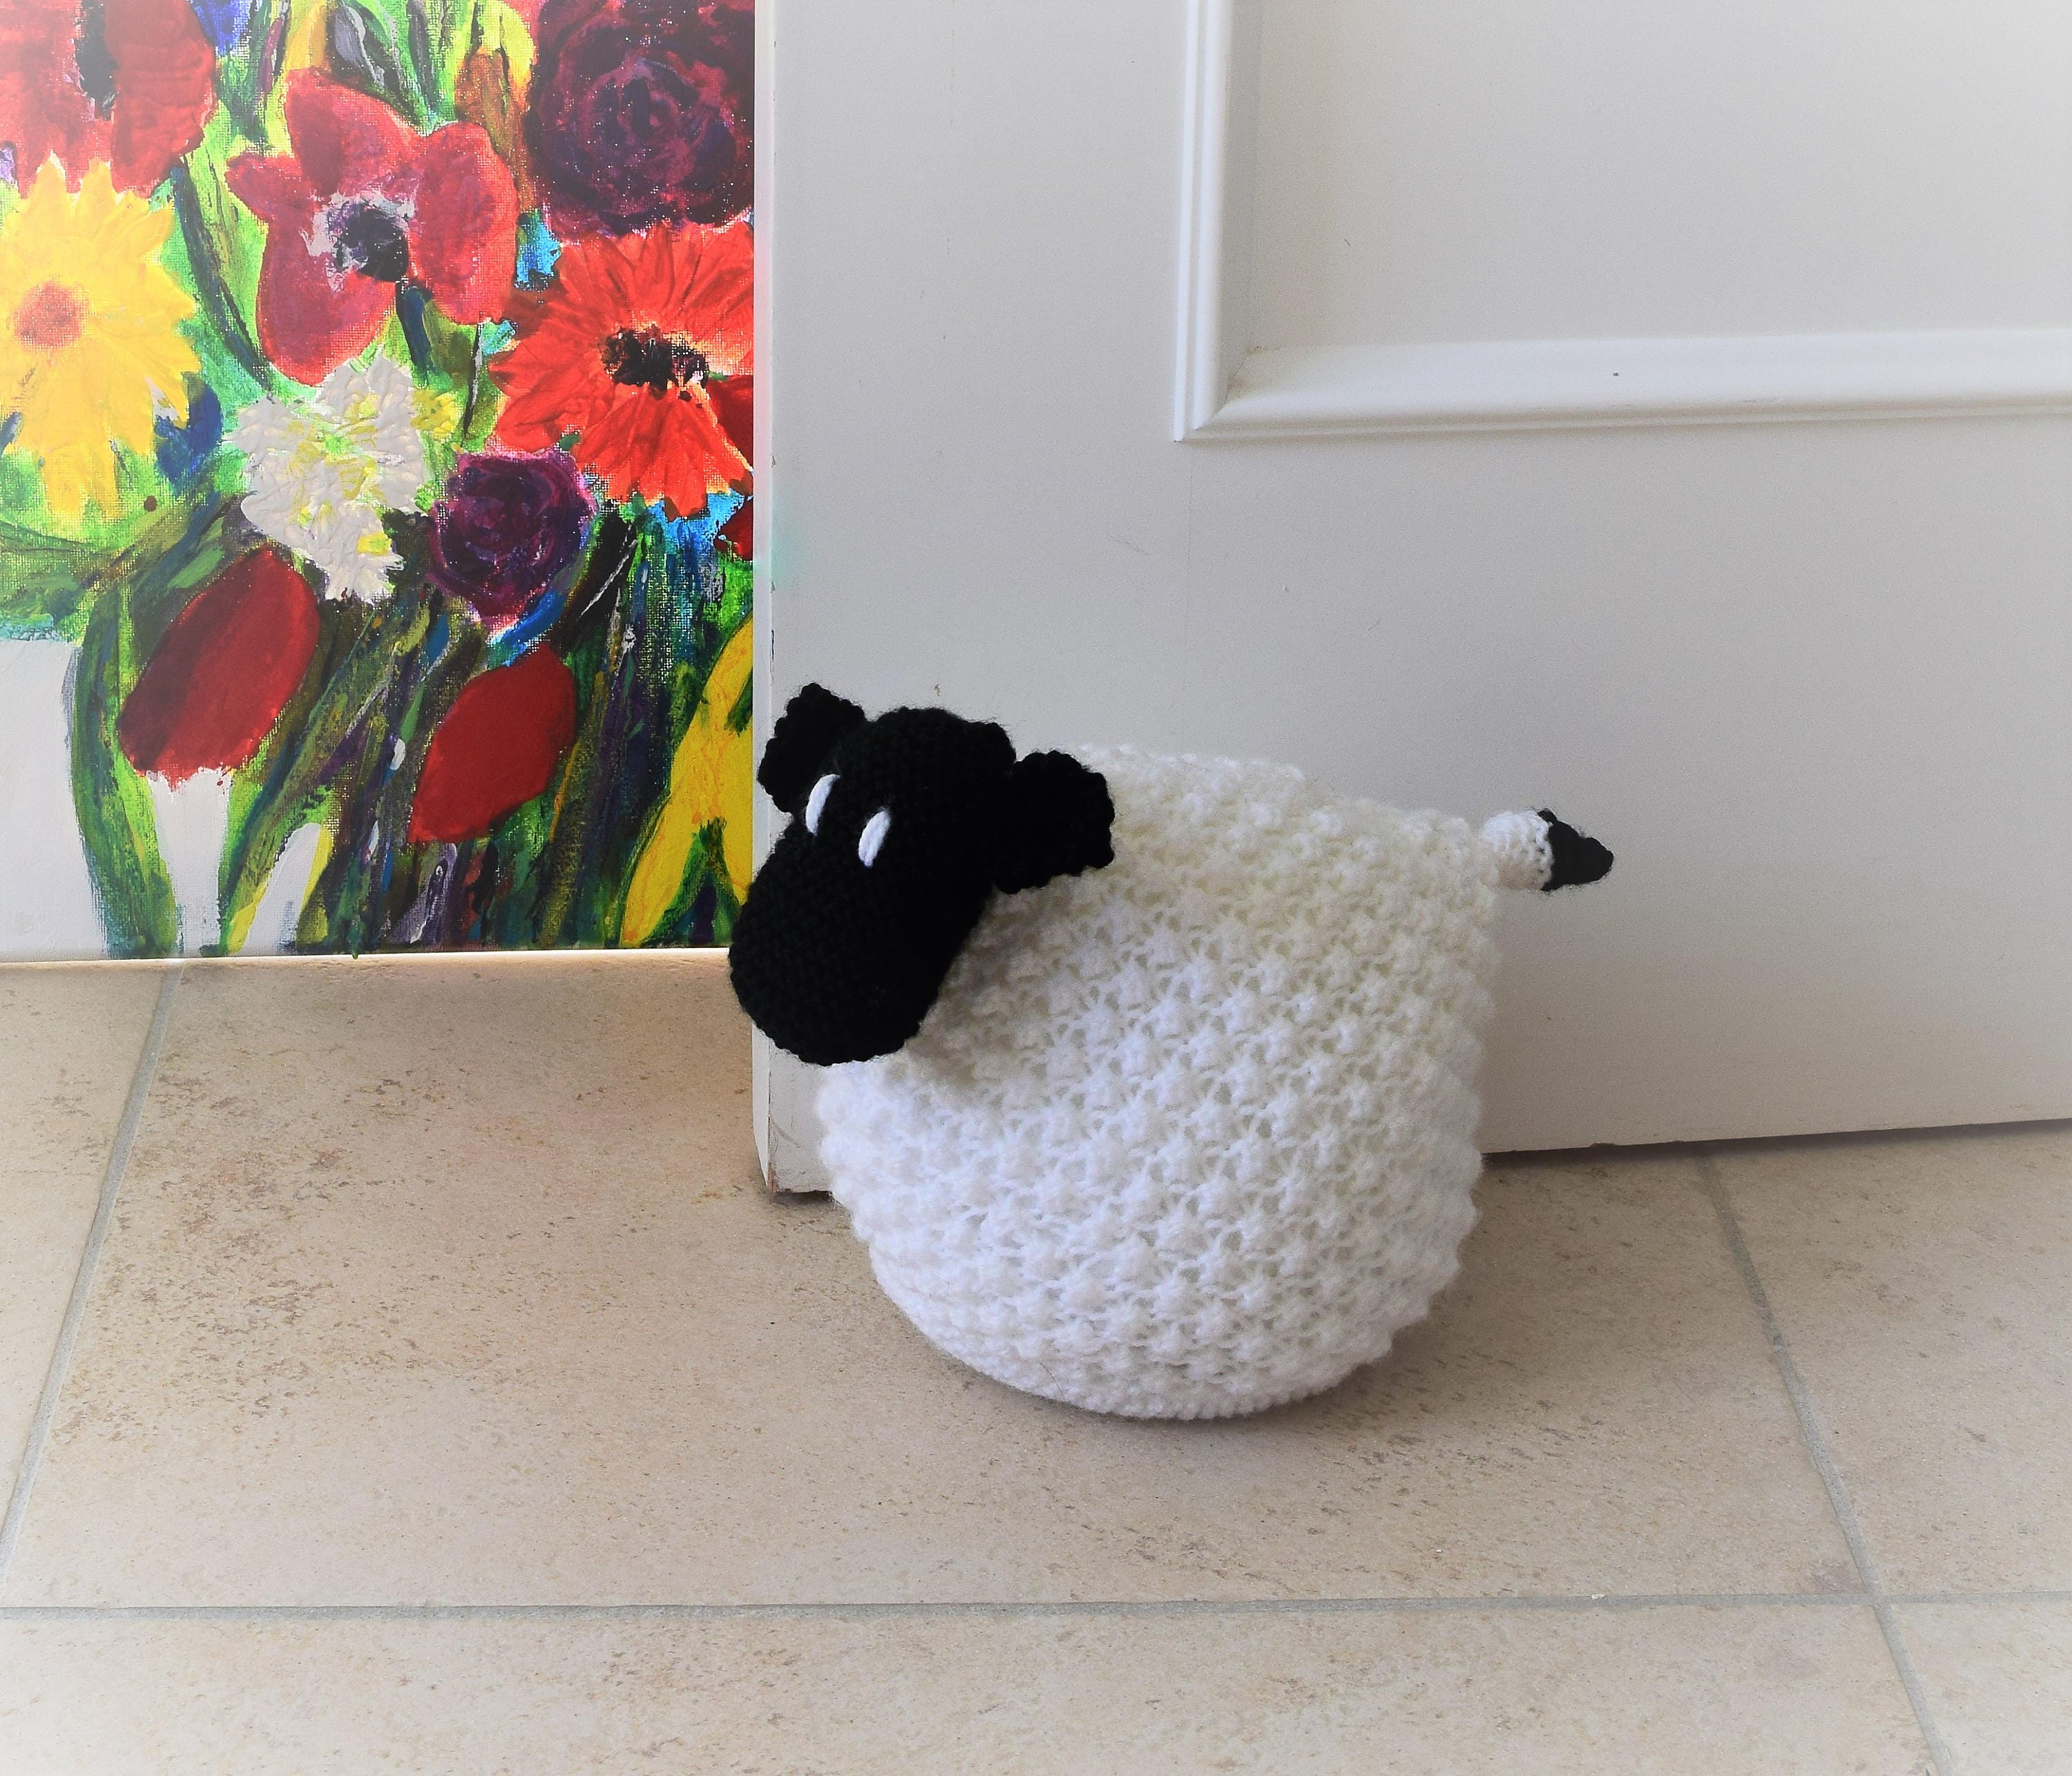 Doorstop knitting pattern sheep knitting pattern sheep doorstop gallery photo gallery photo gallery photo bankloansurffo Gallery